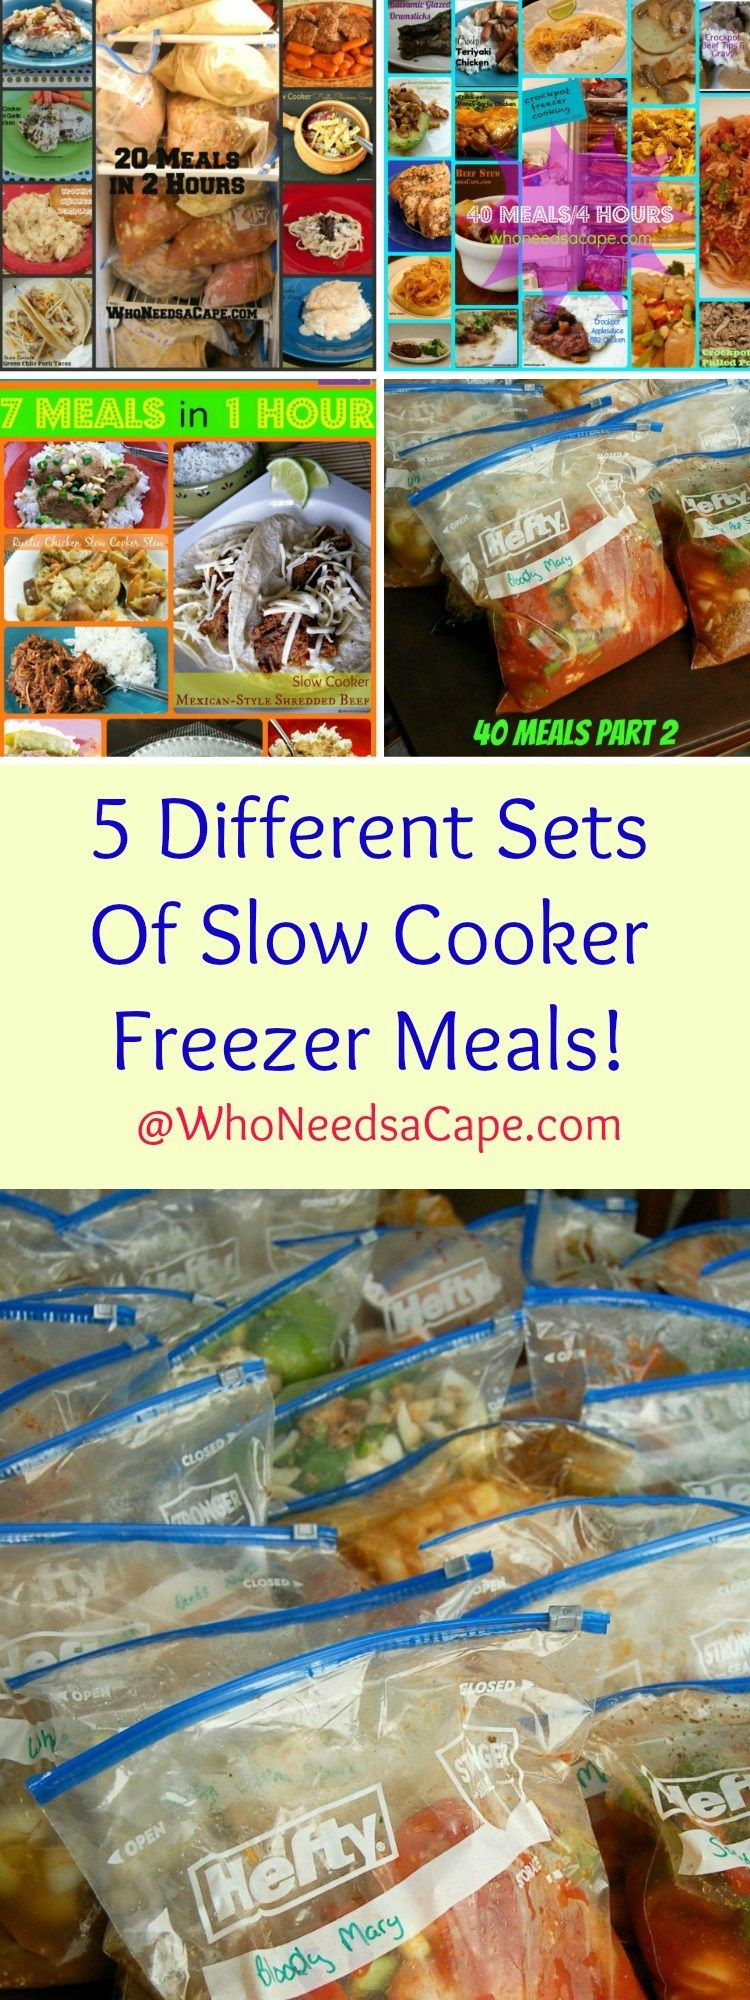 5 Different Sets of Slow Cooker Freezer Meals - Pick which one you'll make 7…